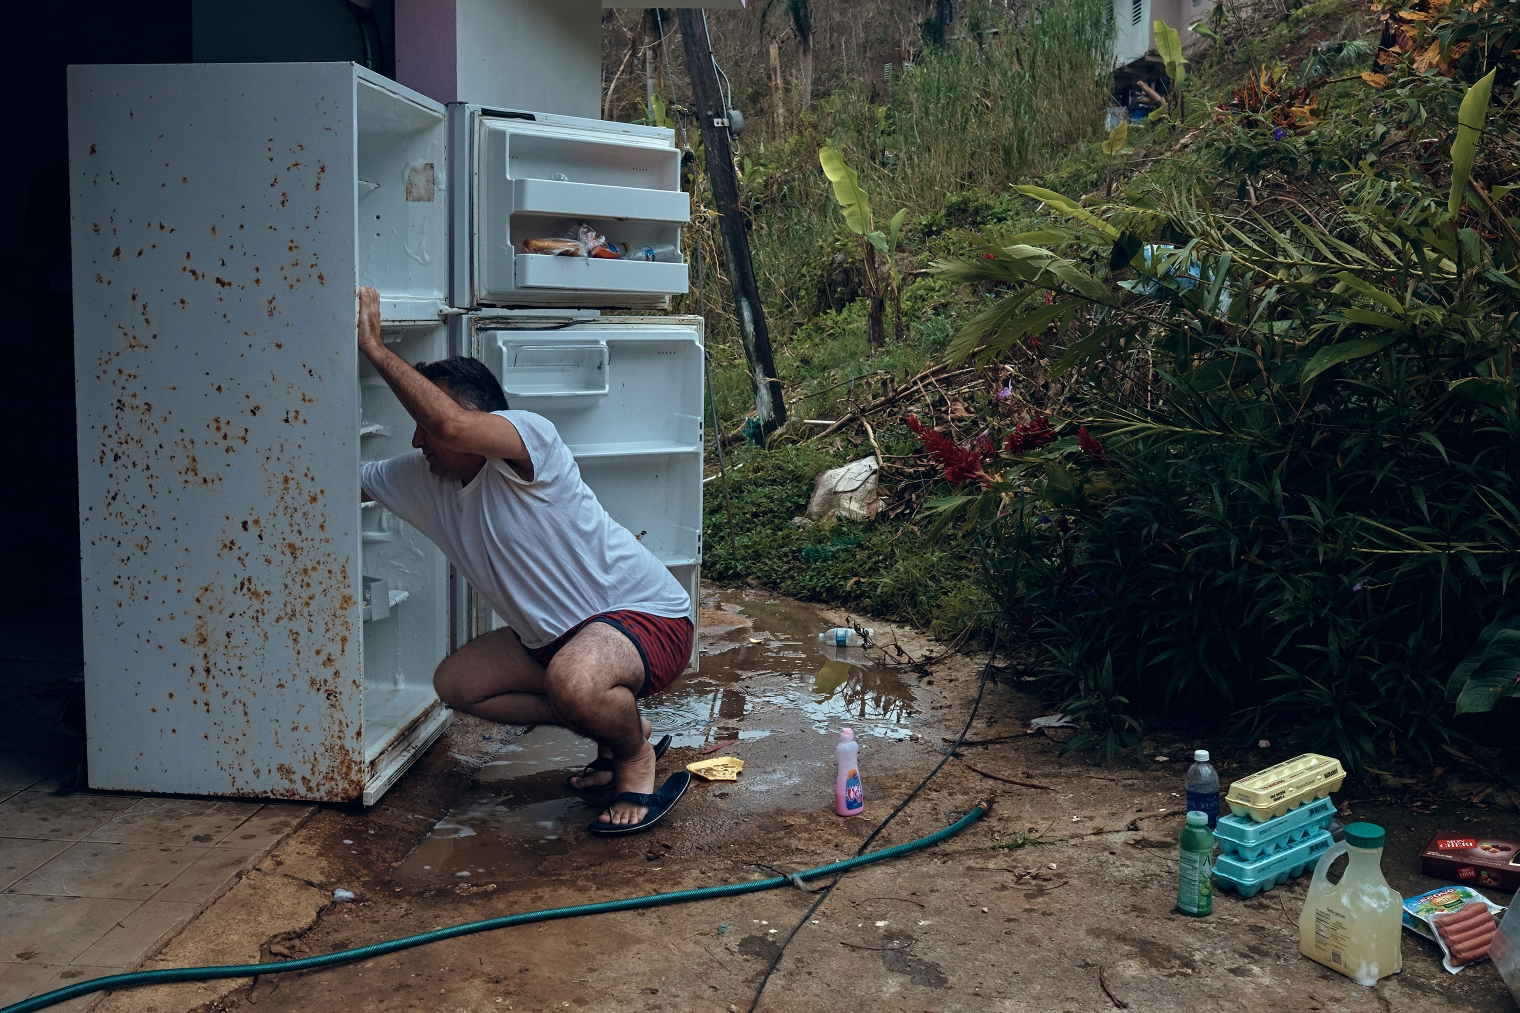 Gerardo Majero cleans his fridge in Morovis, Puerto Rico, on Oct. 1, 2017.